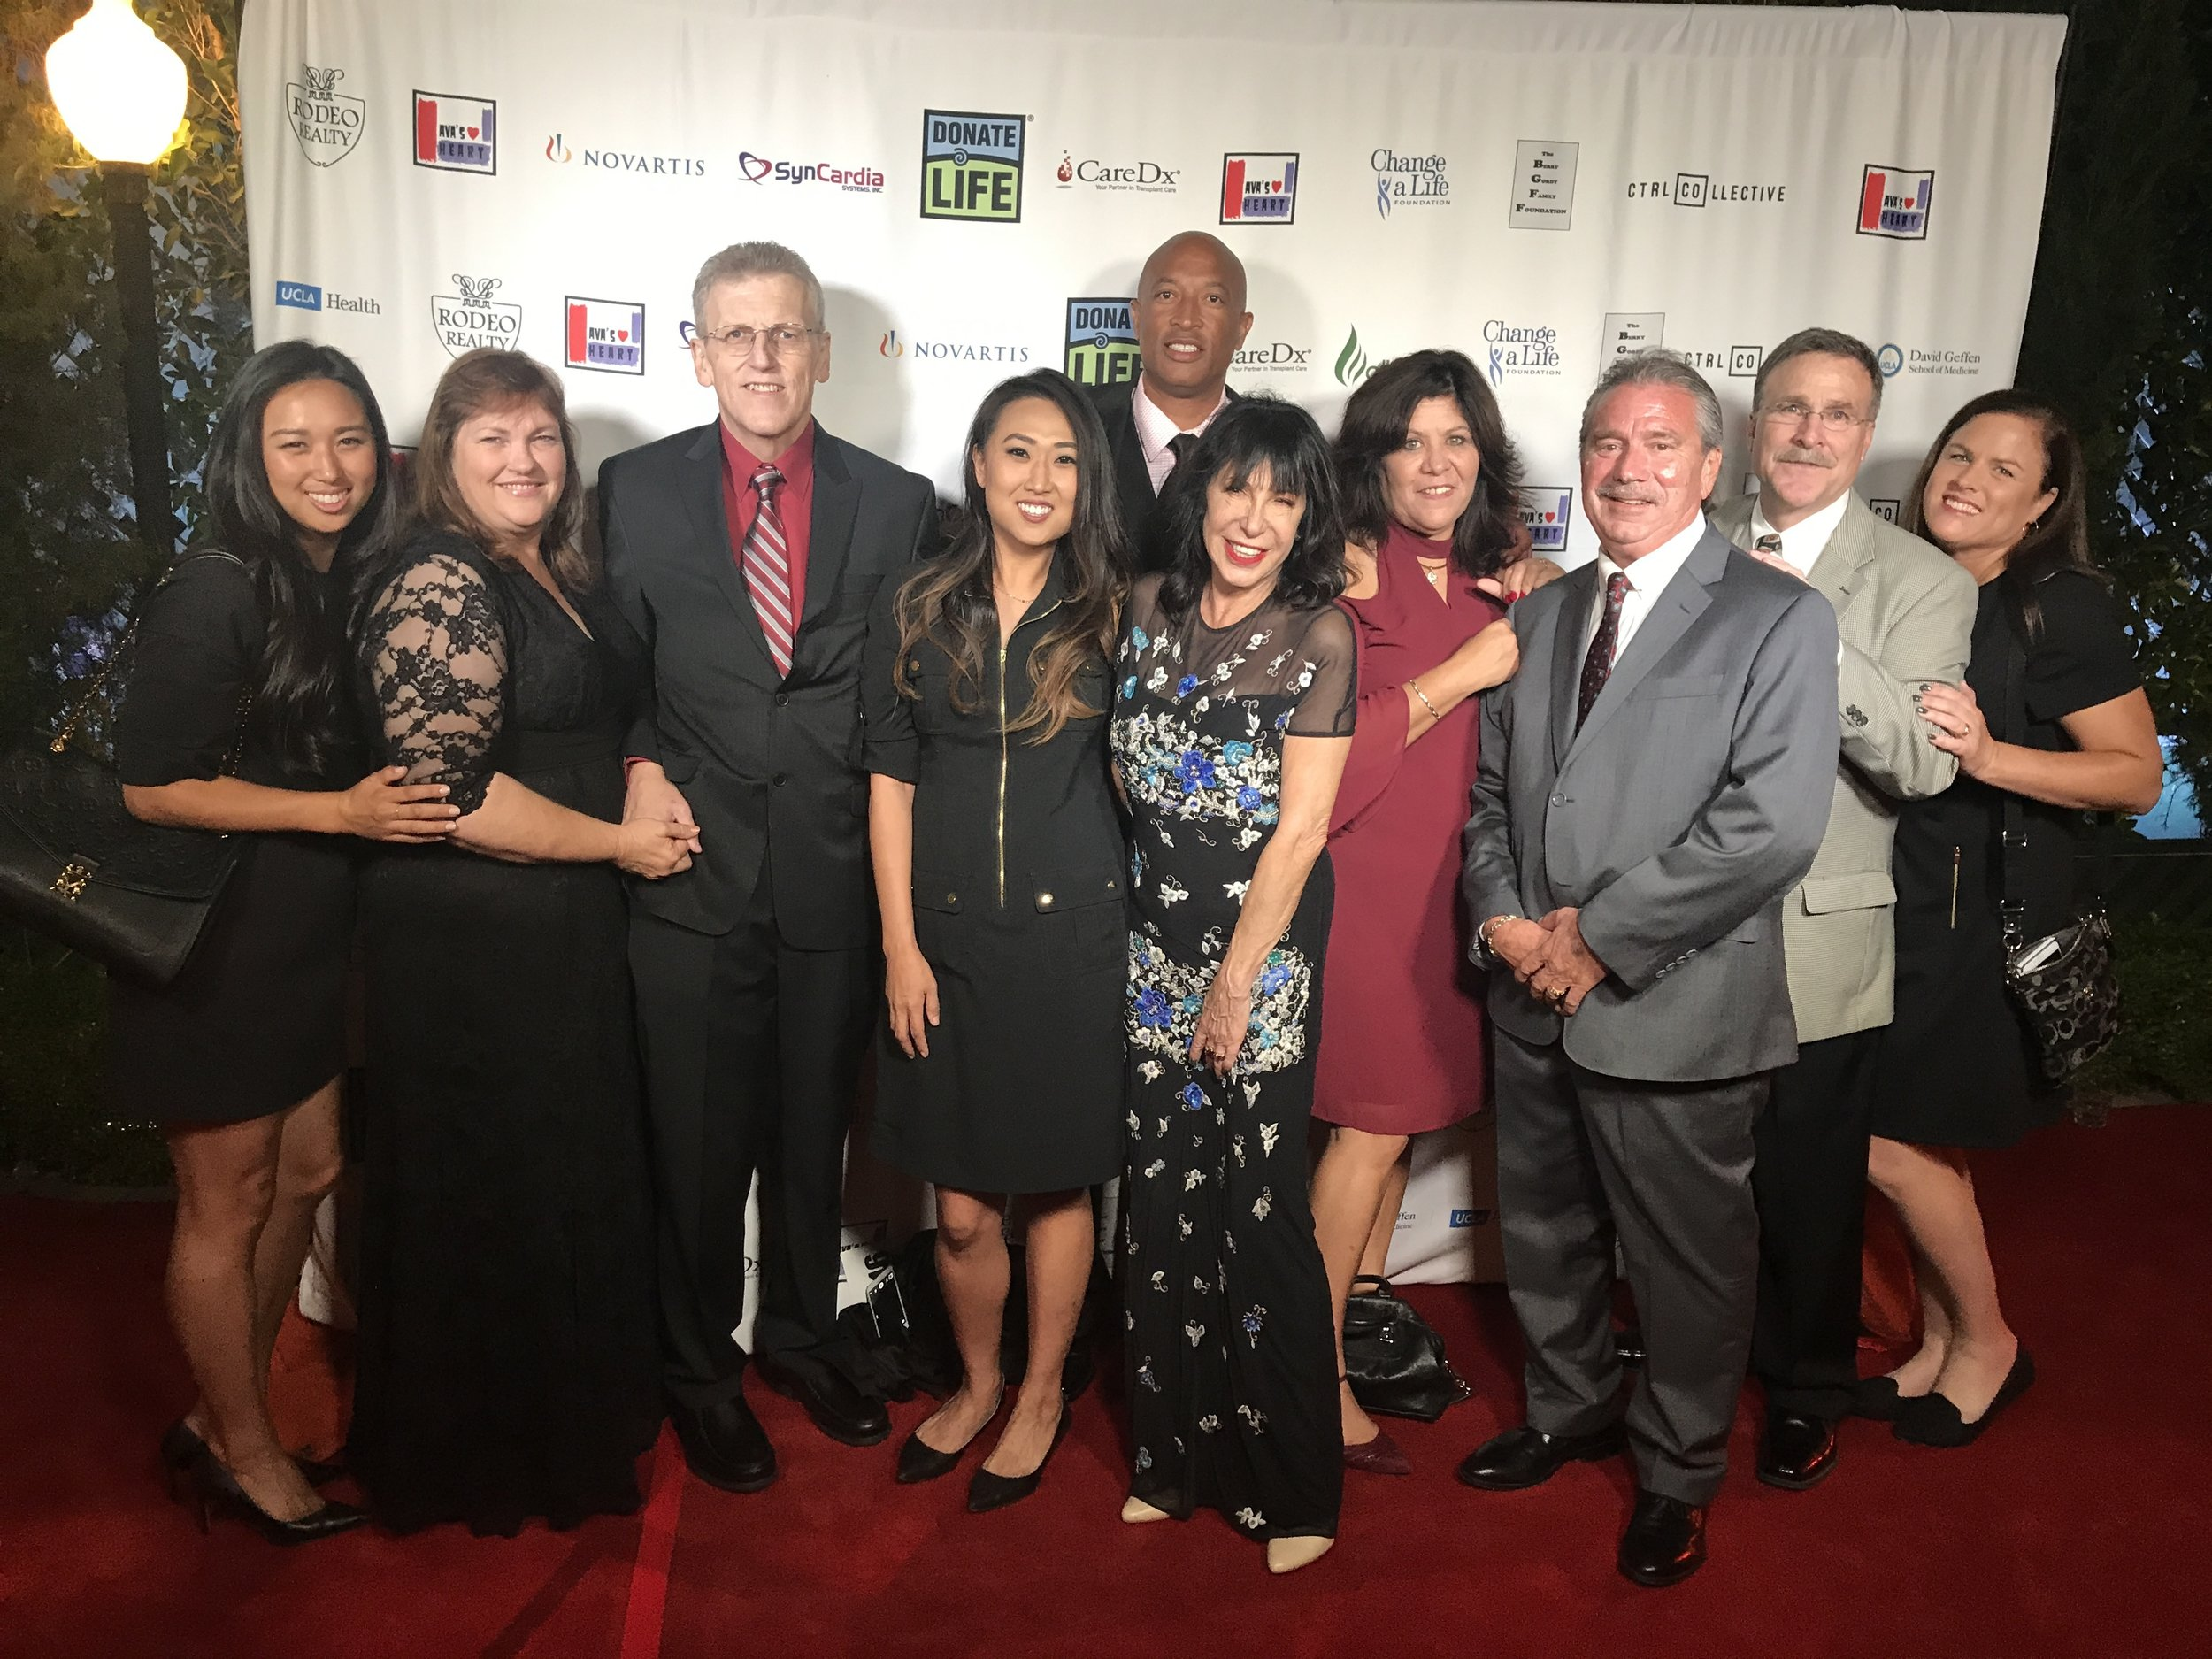 Our transplant family and AVA KAUFMAN, Founder of Ava's Heart Heroes Ball